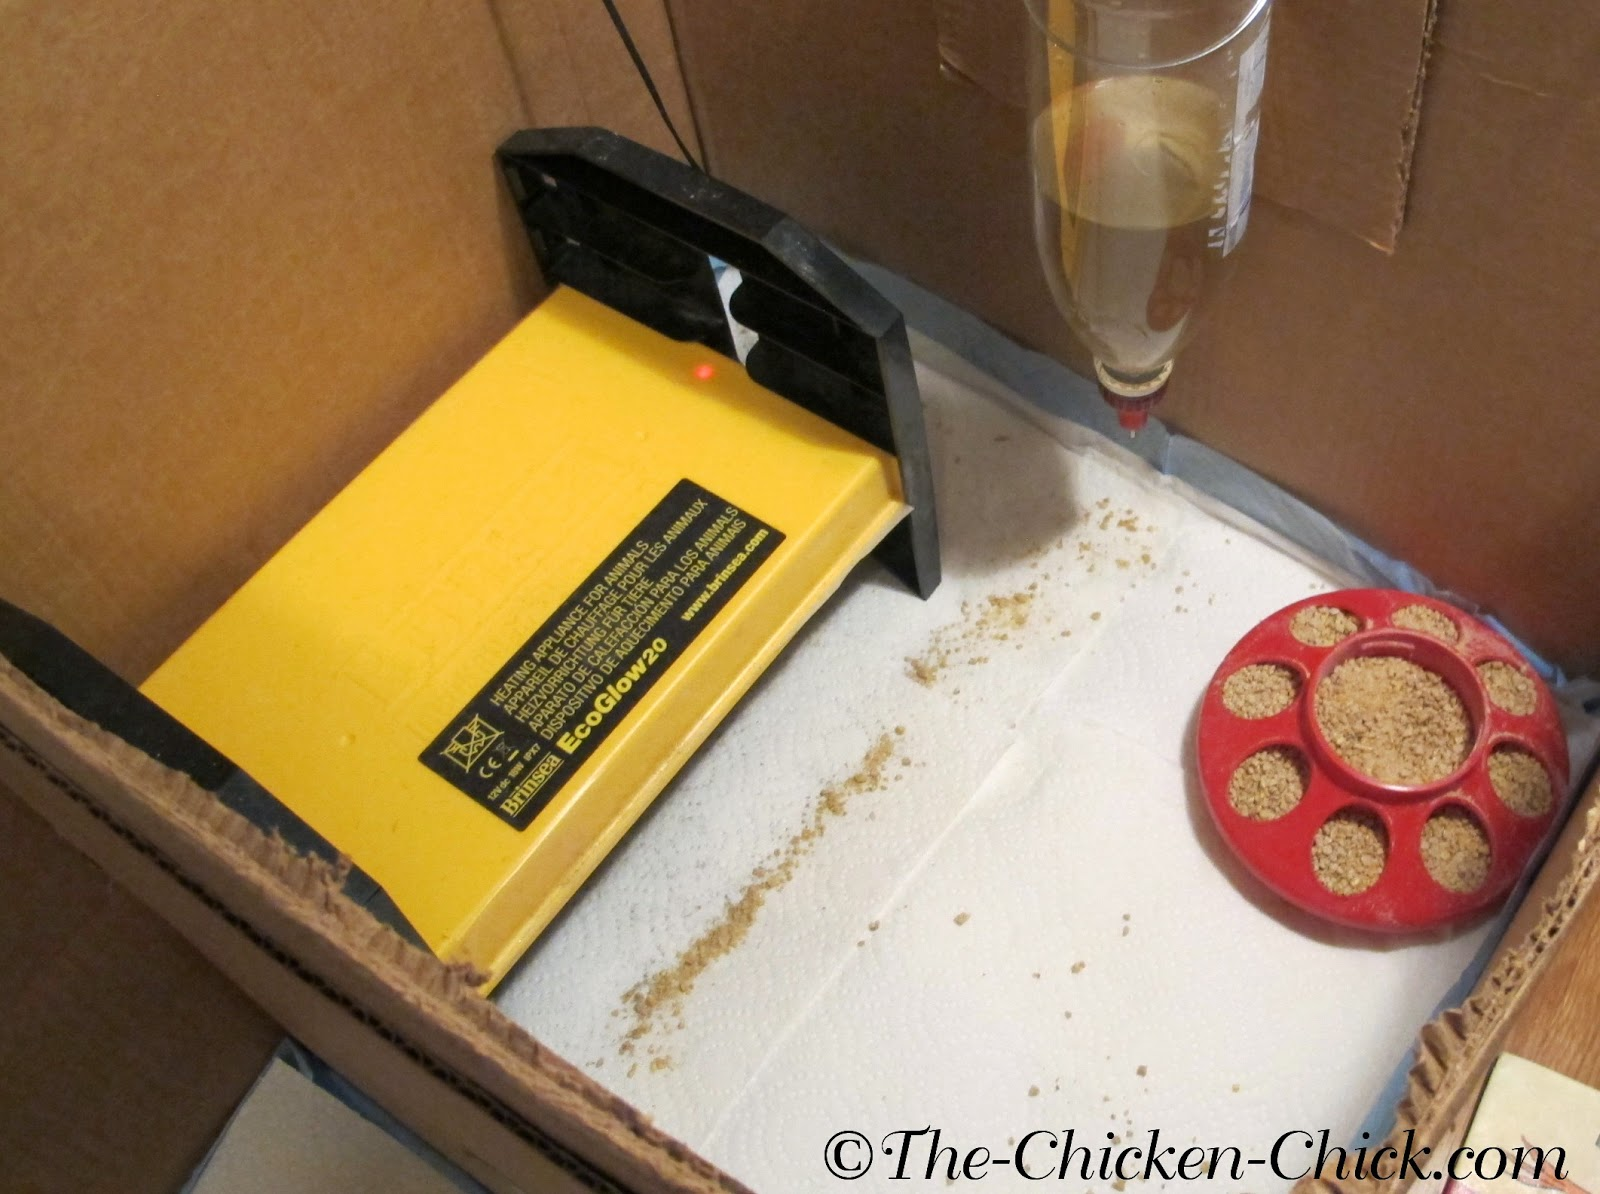 I always have a brooder set-up ready on hatch day in the event of rejection by the mother hen.